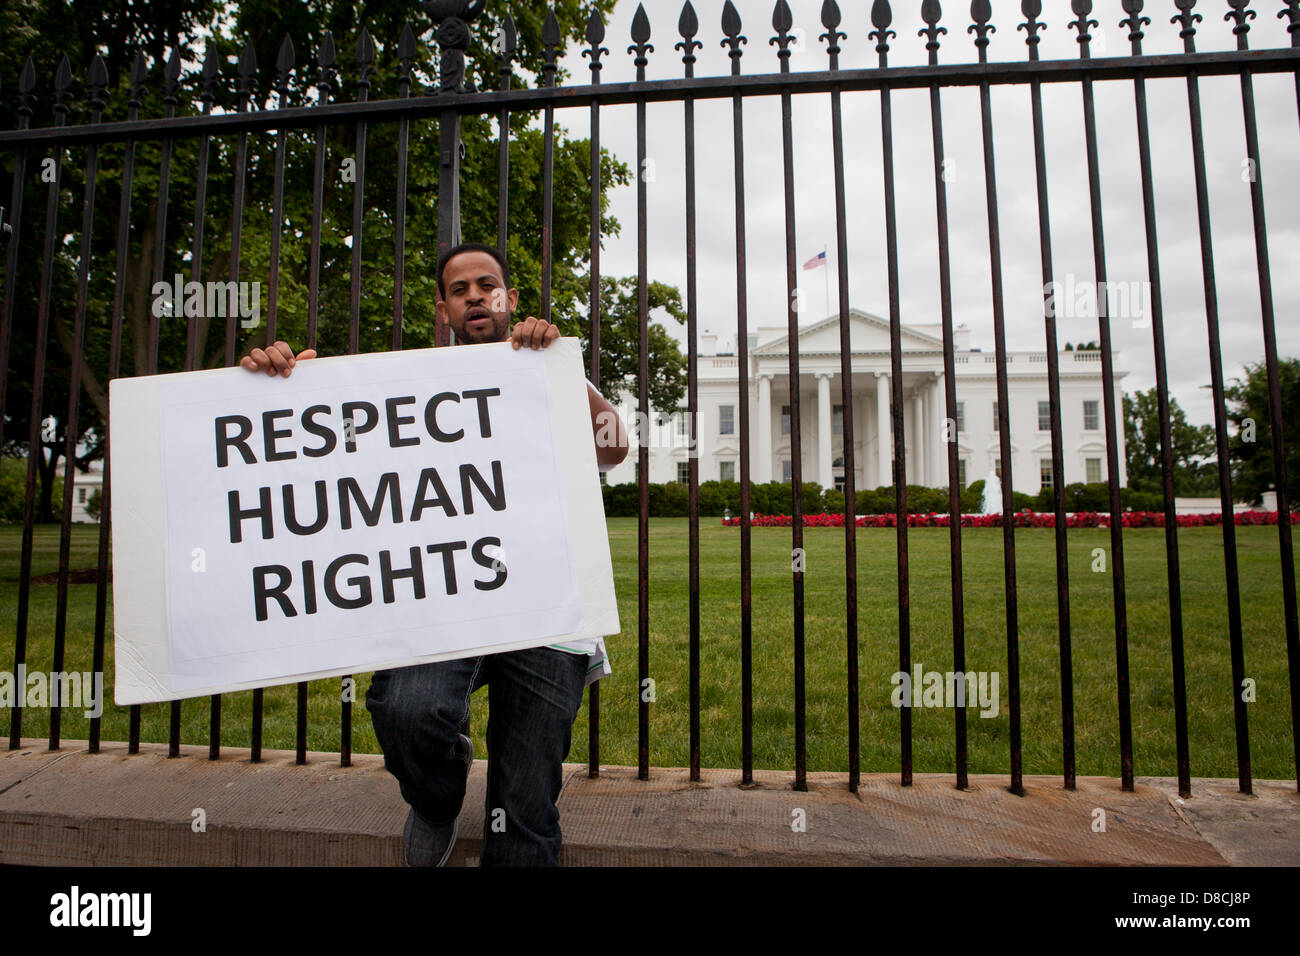 Rights Photos & Rights Images - Alamy